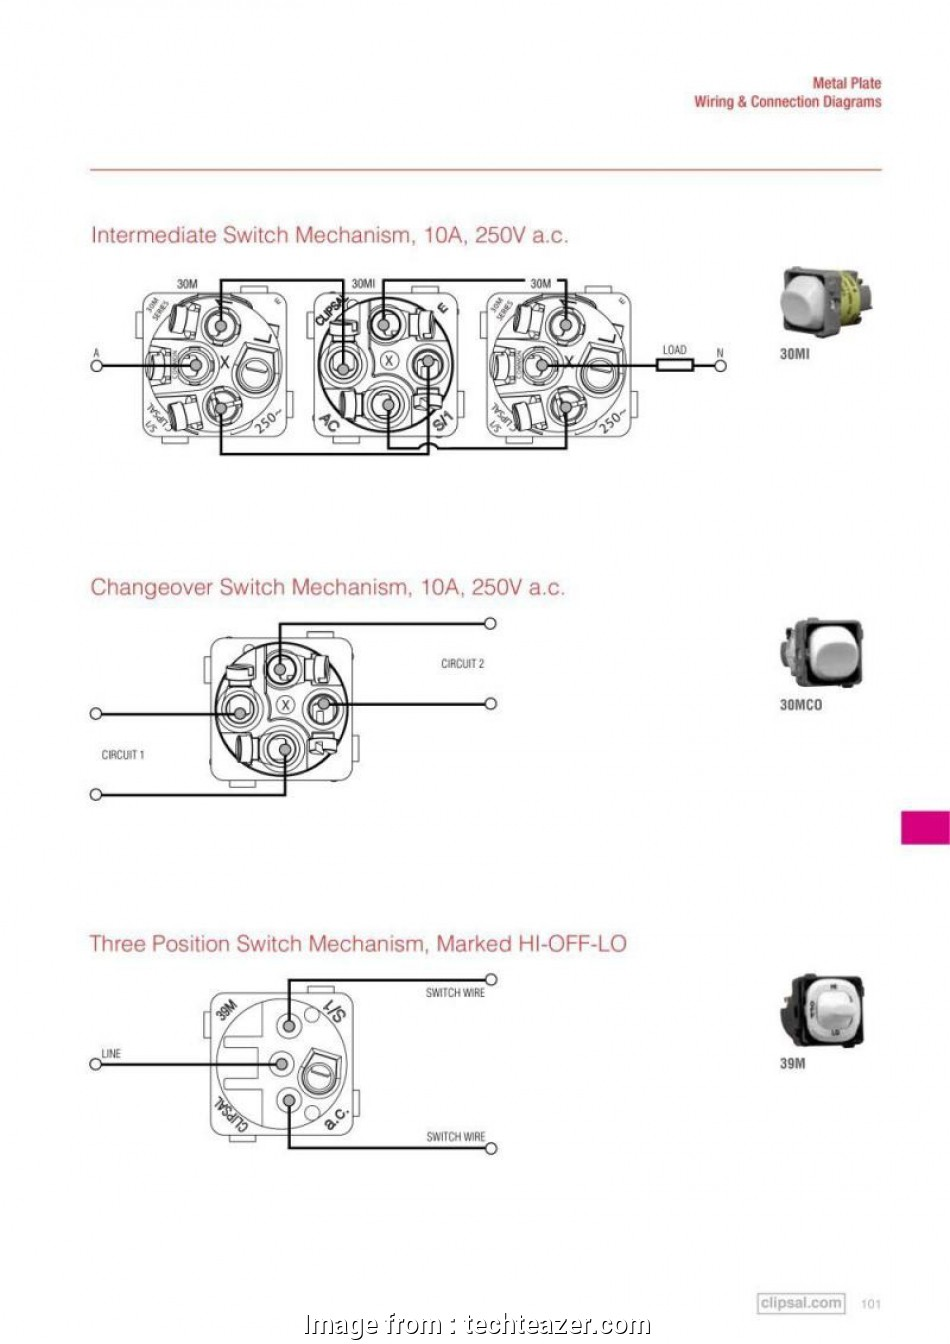 light switch mechanism wiring Hpm Switch Wiring Diagram Wire Center Throughout Dimmer For 14 New Light Switch Mechanism Wiring Galleries